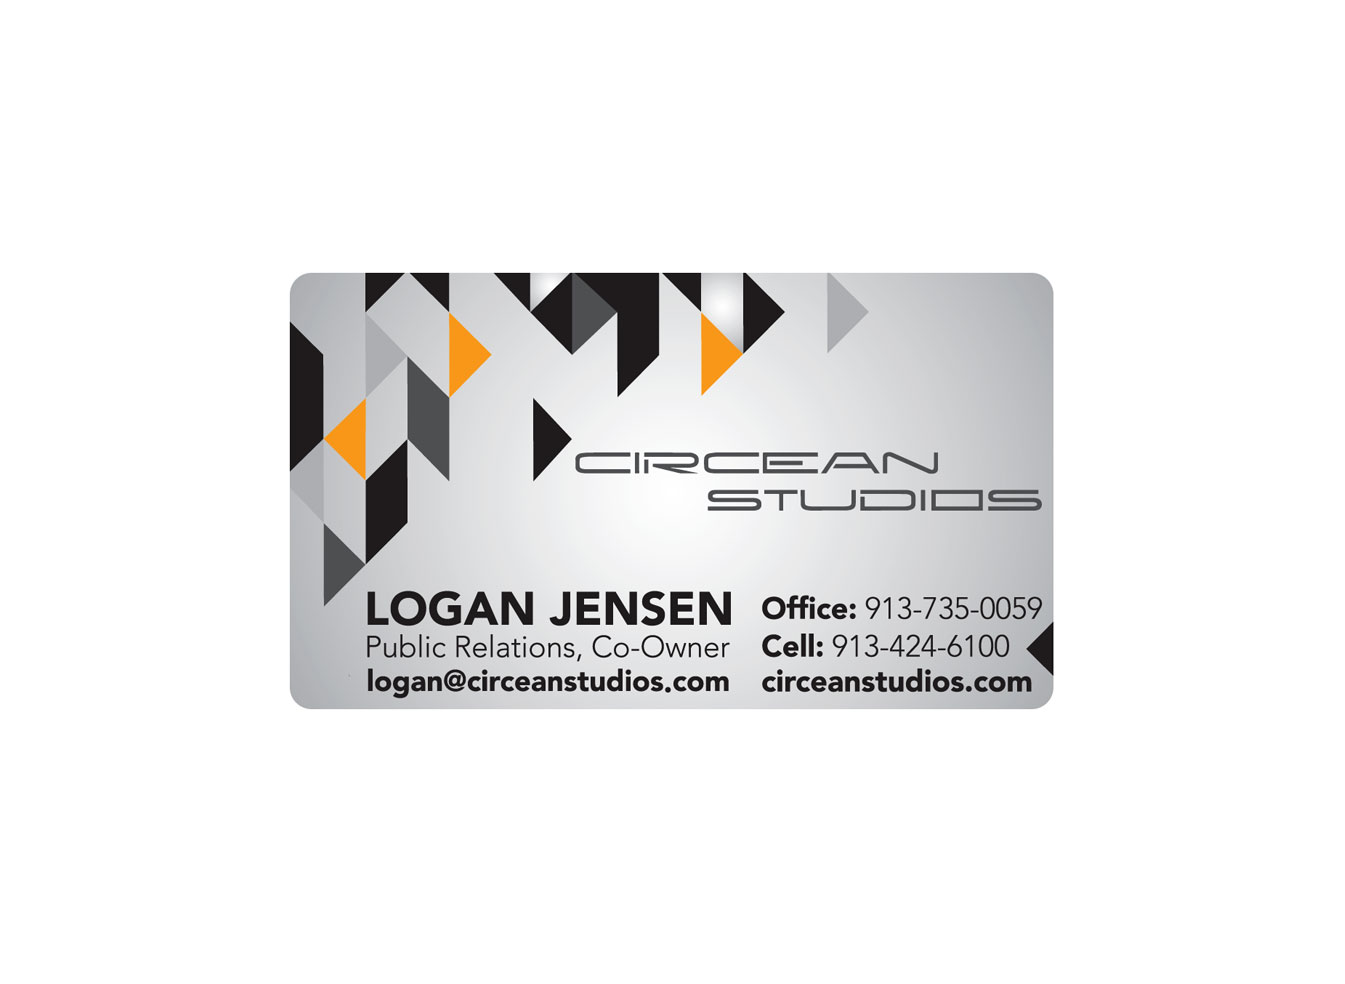 Circean Studios business card design